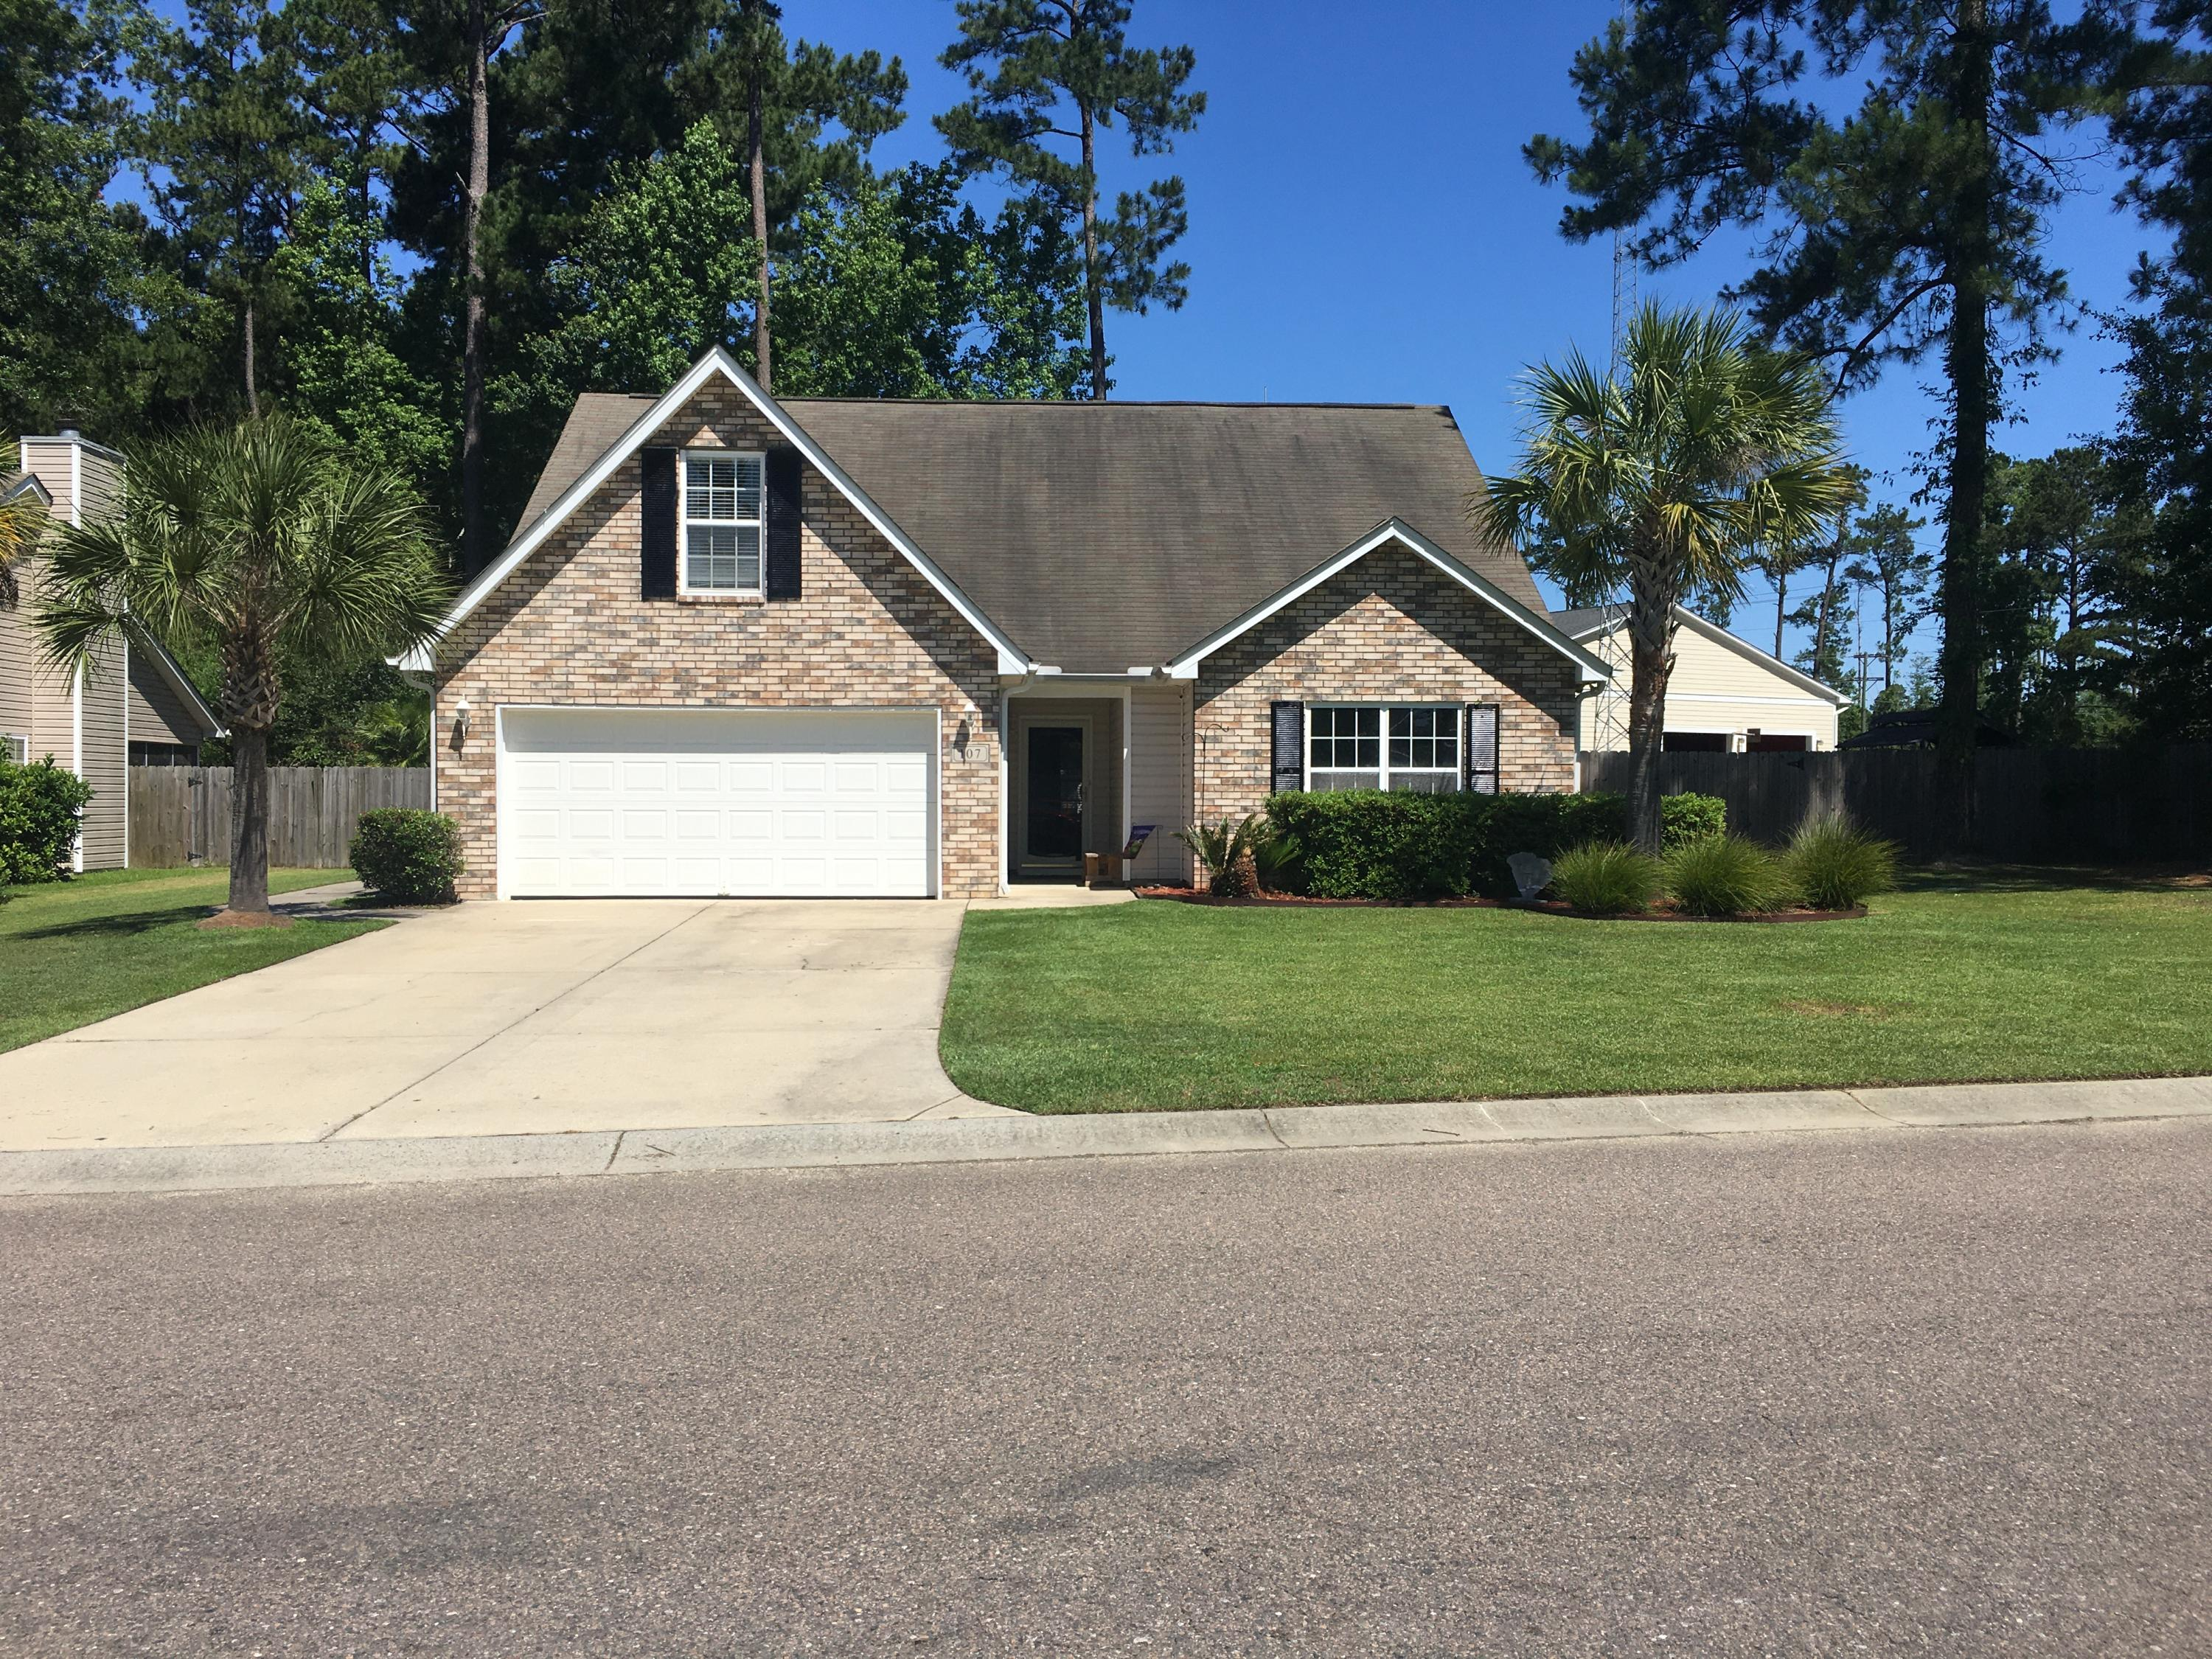 107 Felder Creek Road Summerville, SC 29486